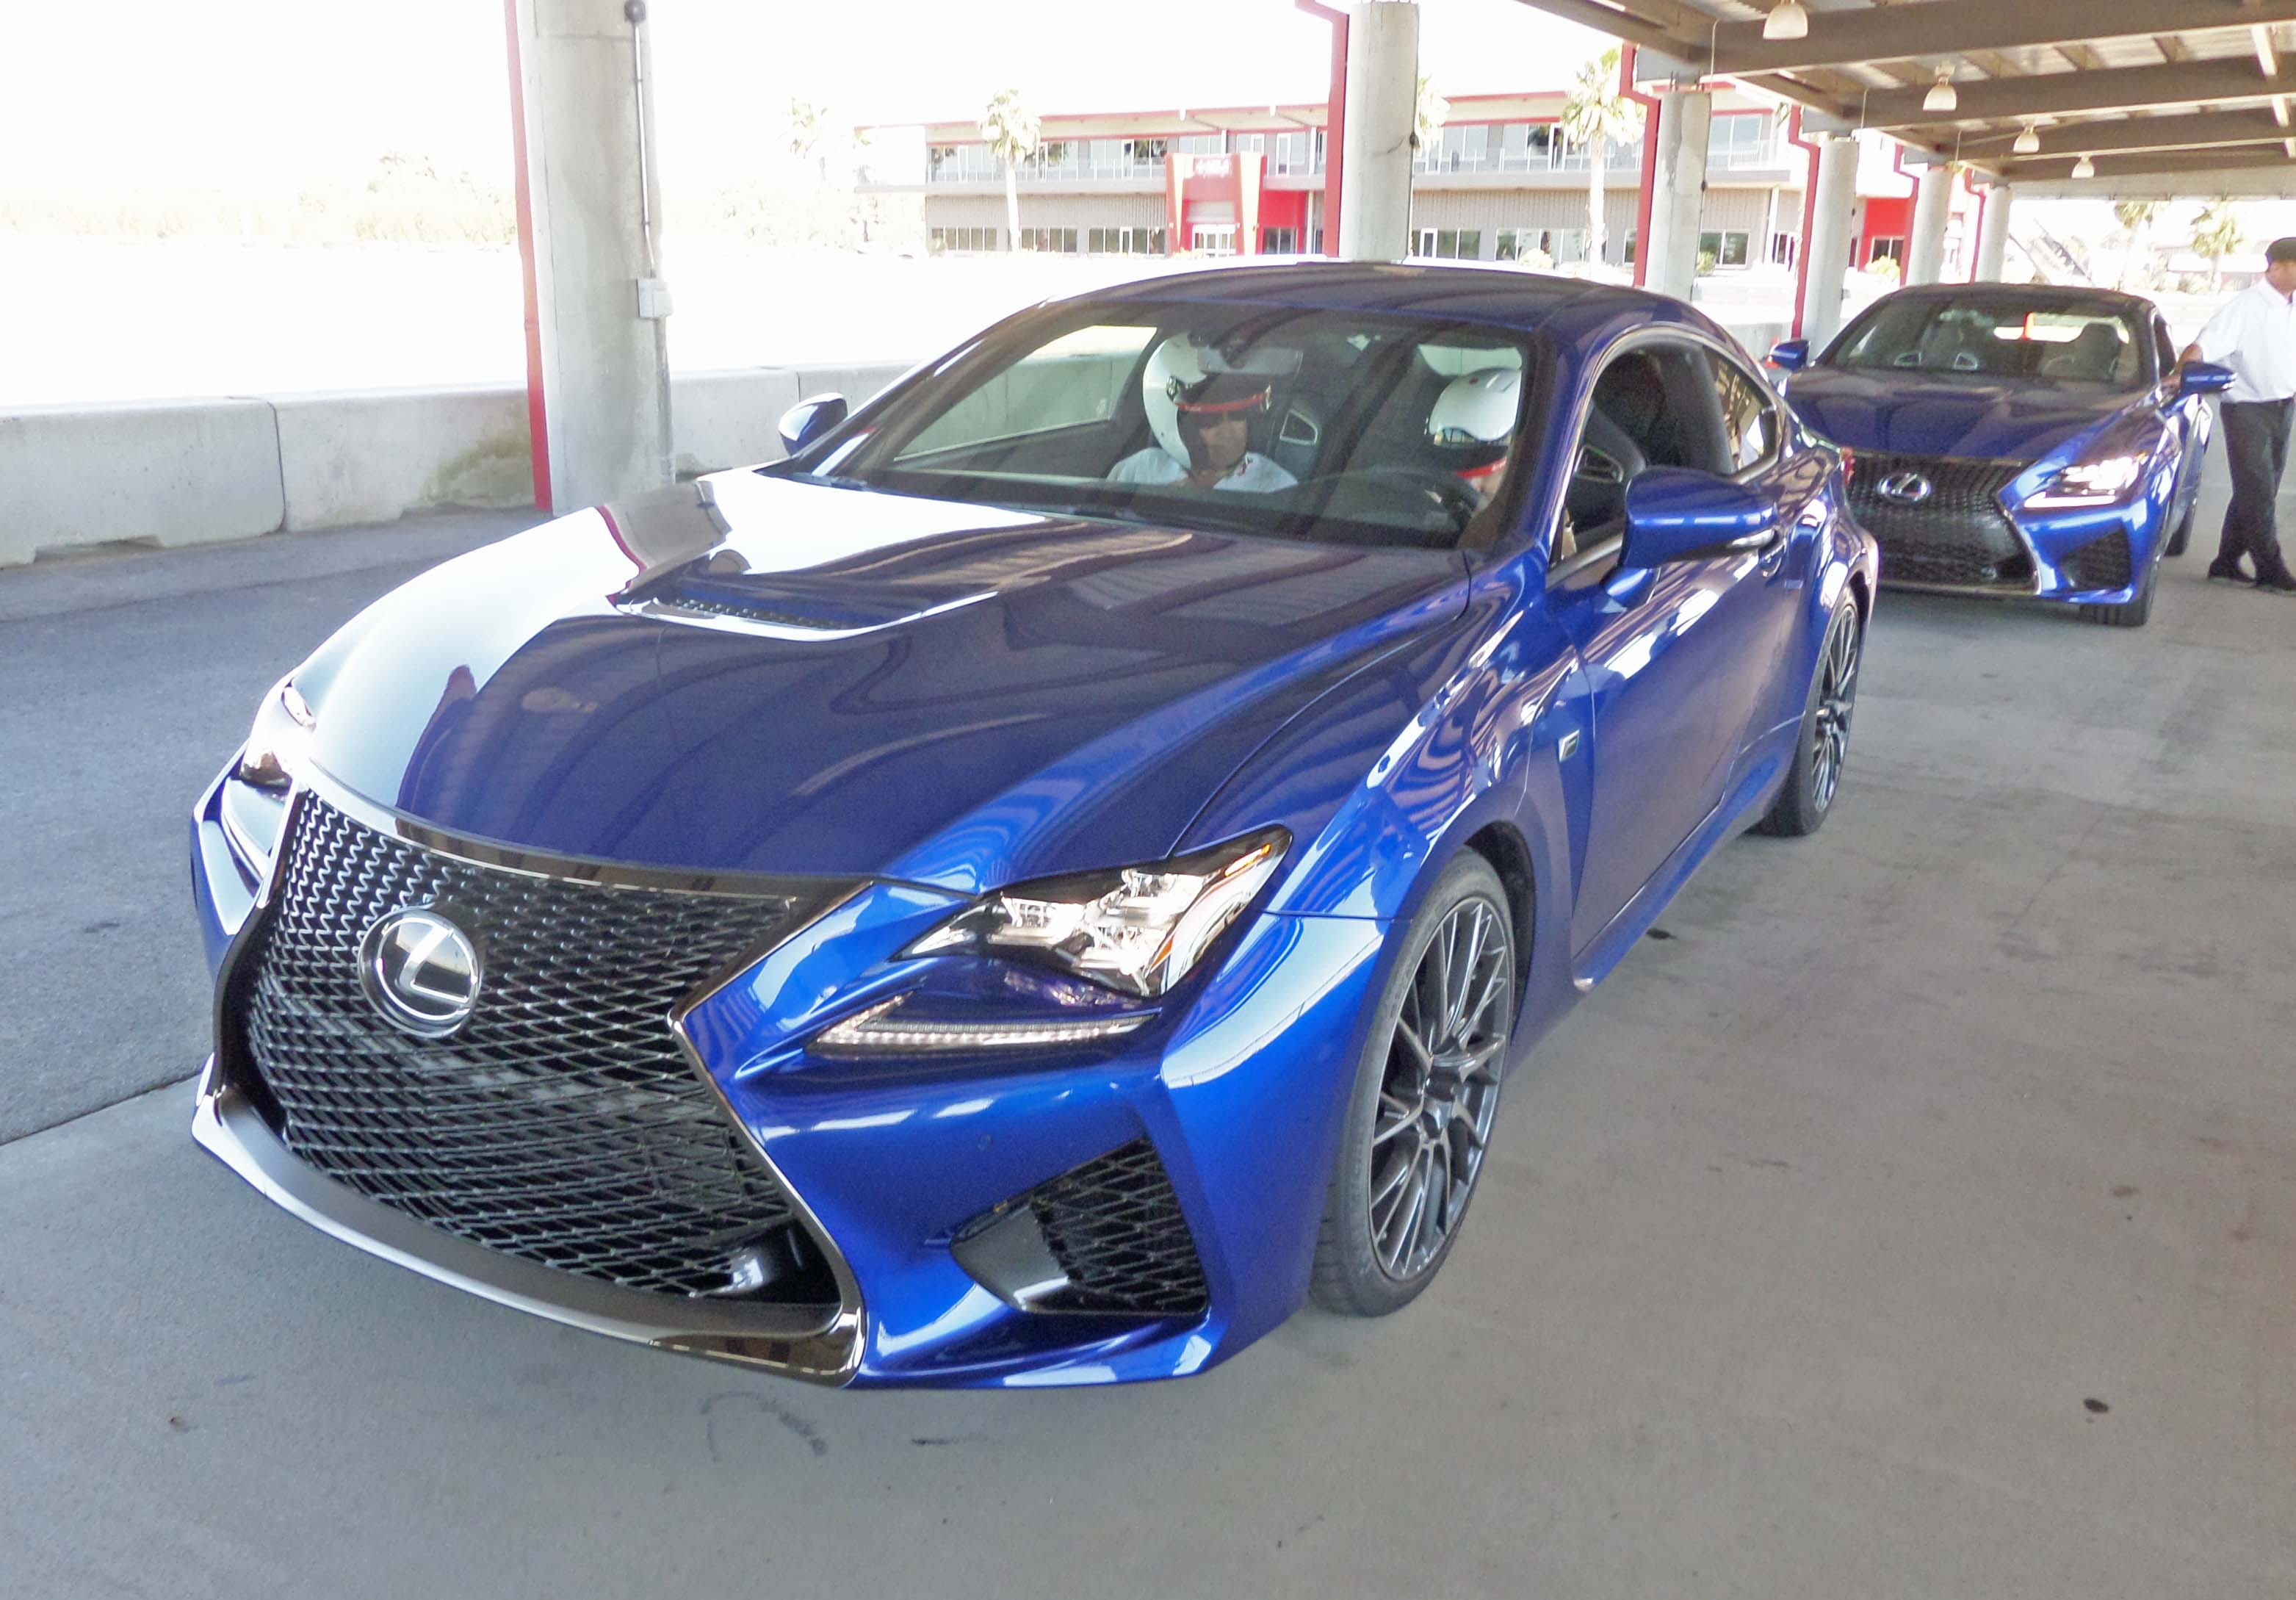 2015 lexus rc350 f sport and lexus rc f coupe test drives. Black Bedroom Furniture Sets. Home Design Ideas